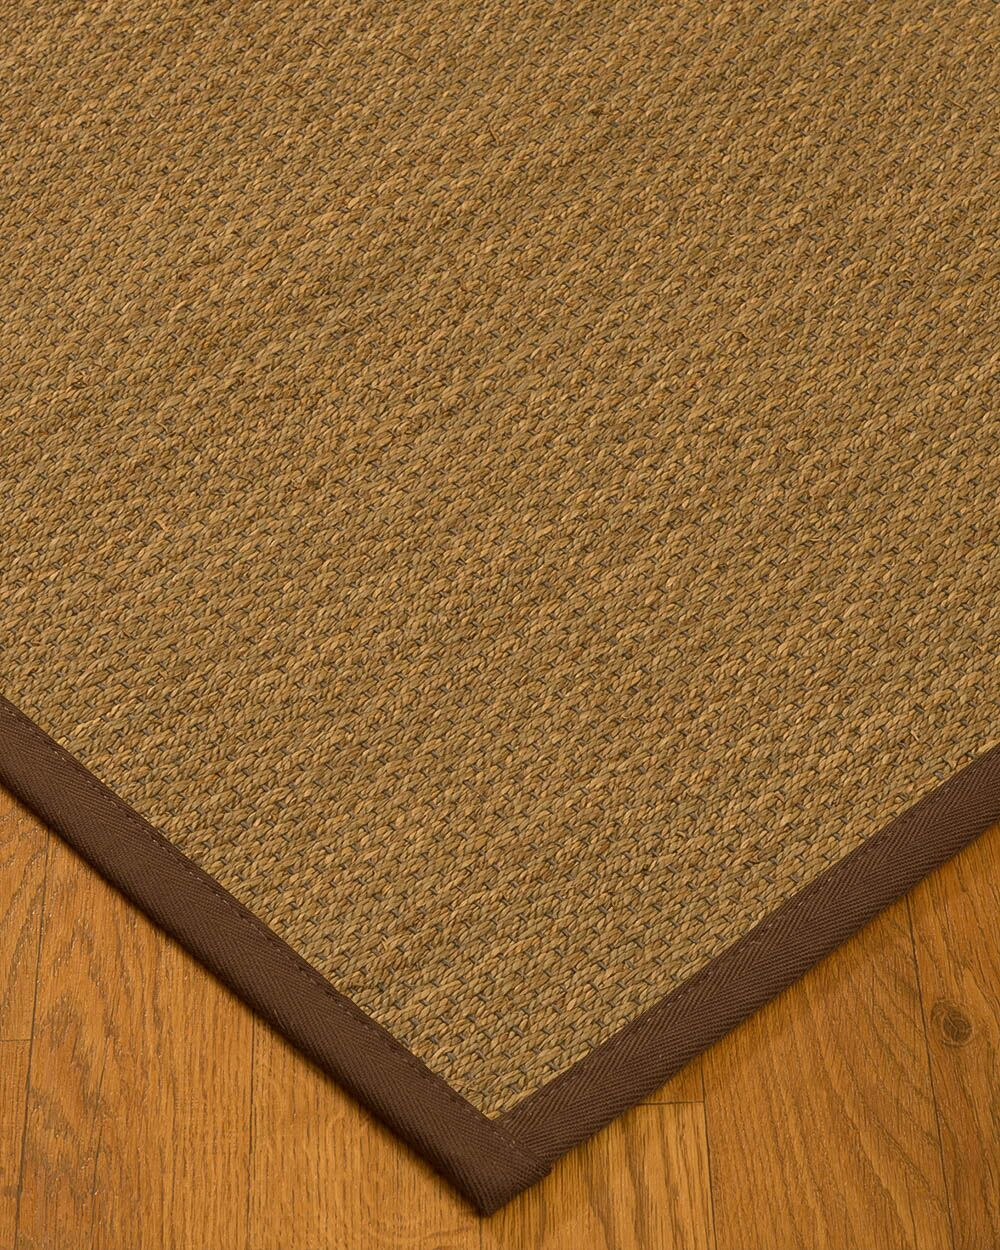 Chavis Border Hand-Woven Beige/Brown Area Rug Rug Size: Rectangle 12' x 15', Rug Pad Included: Yes